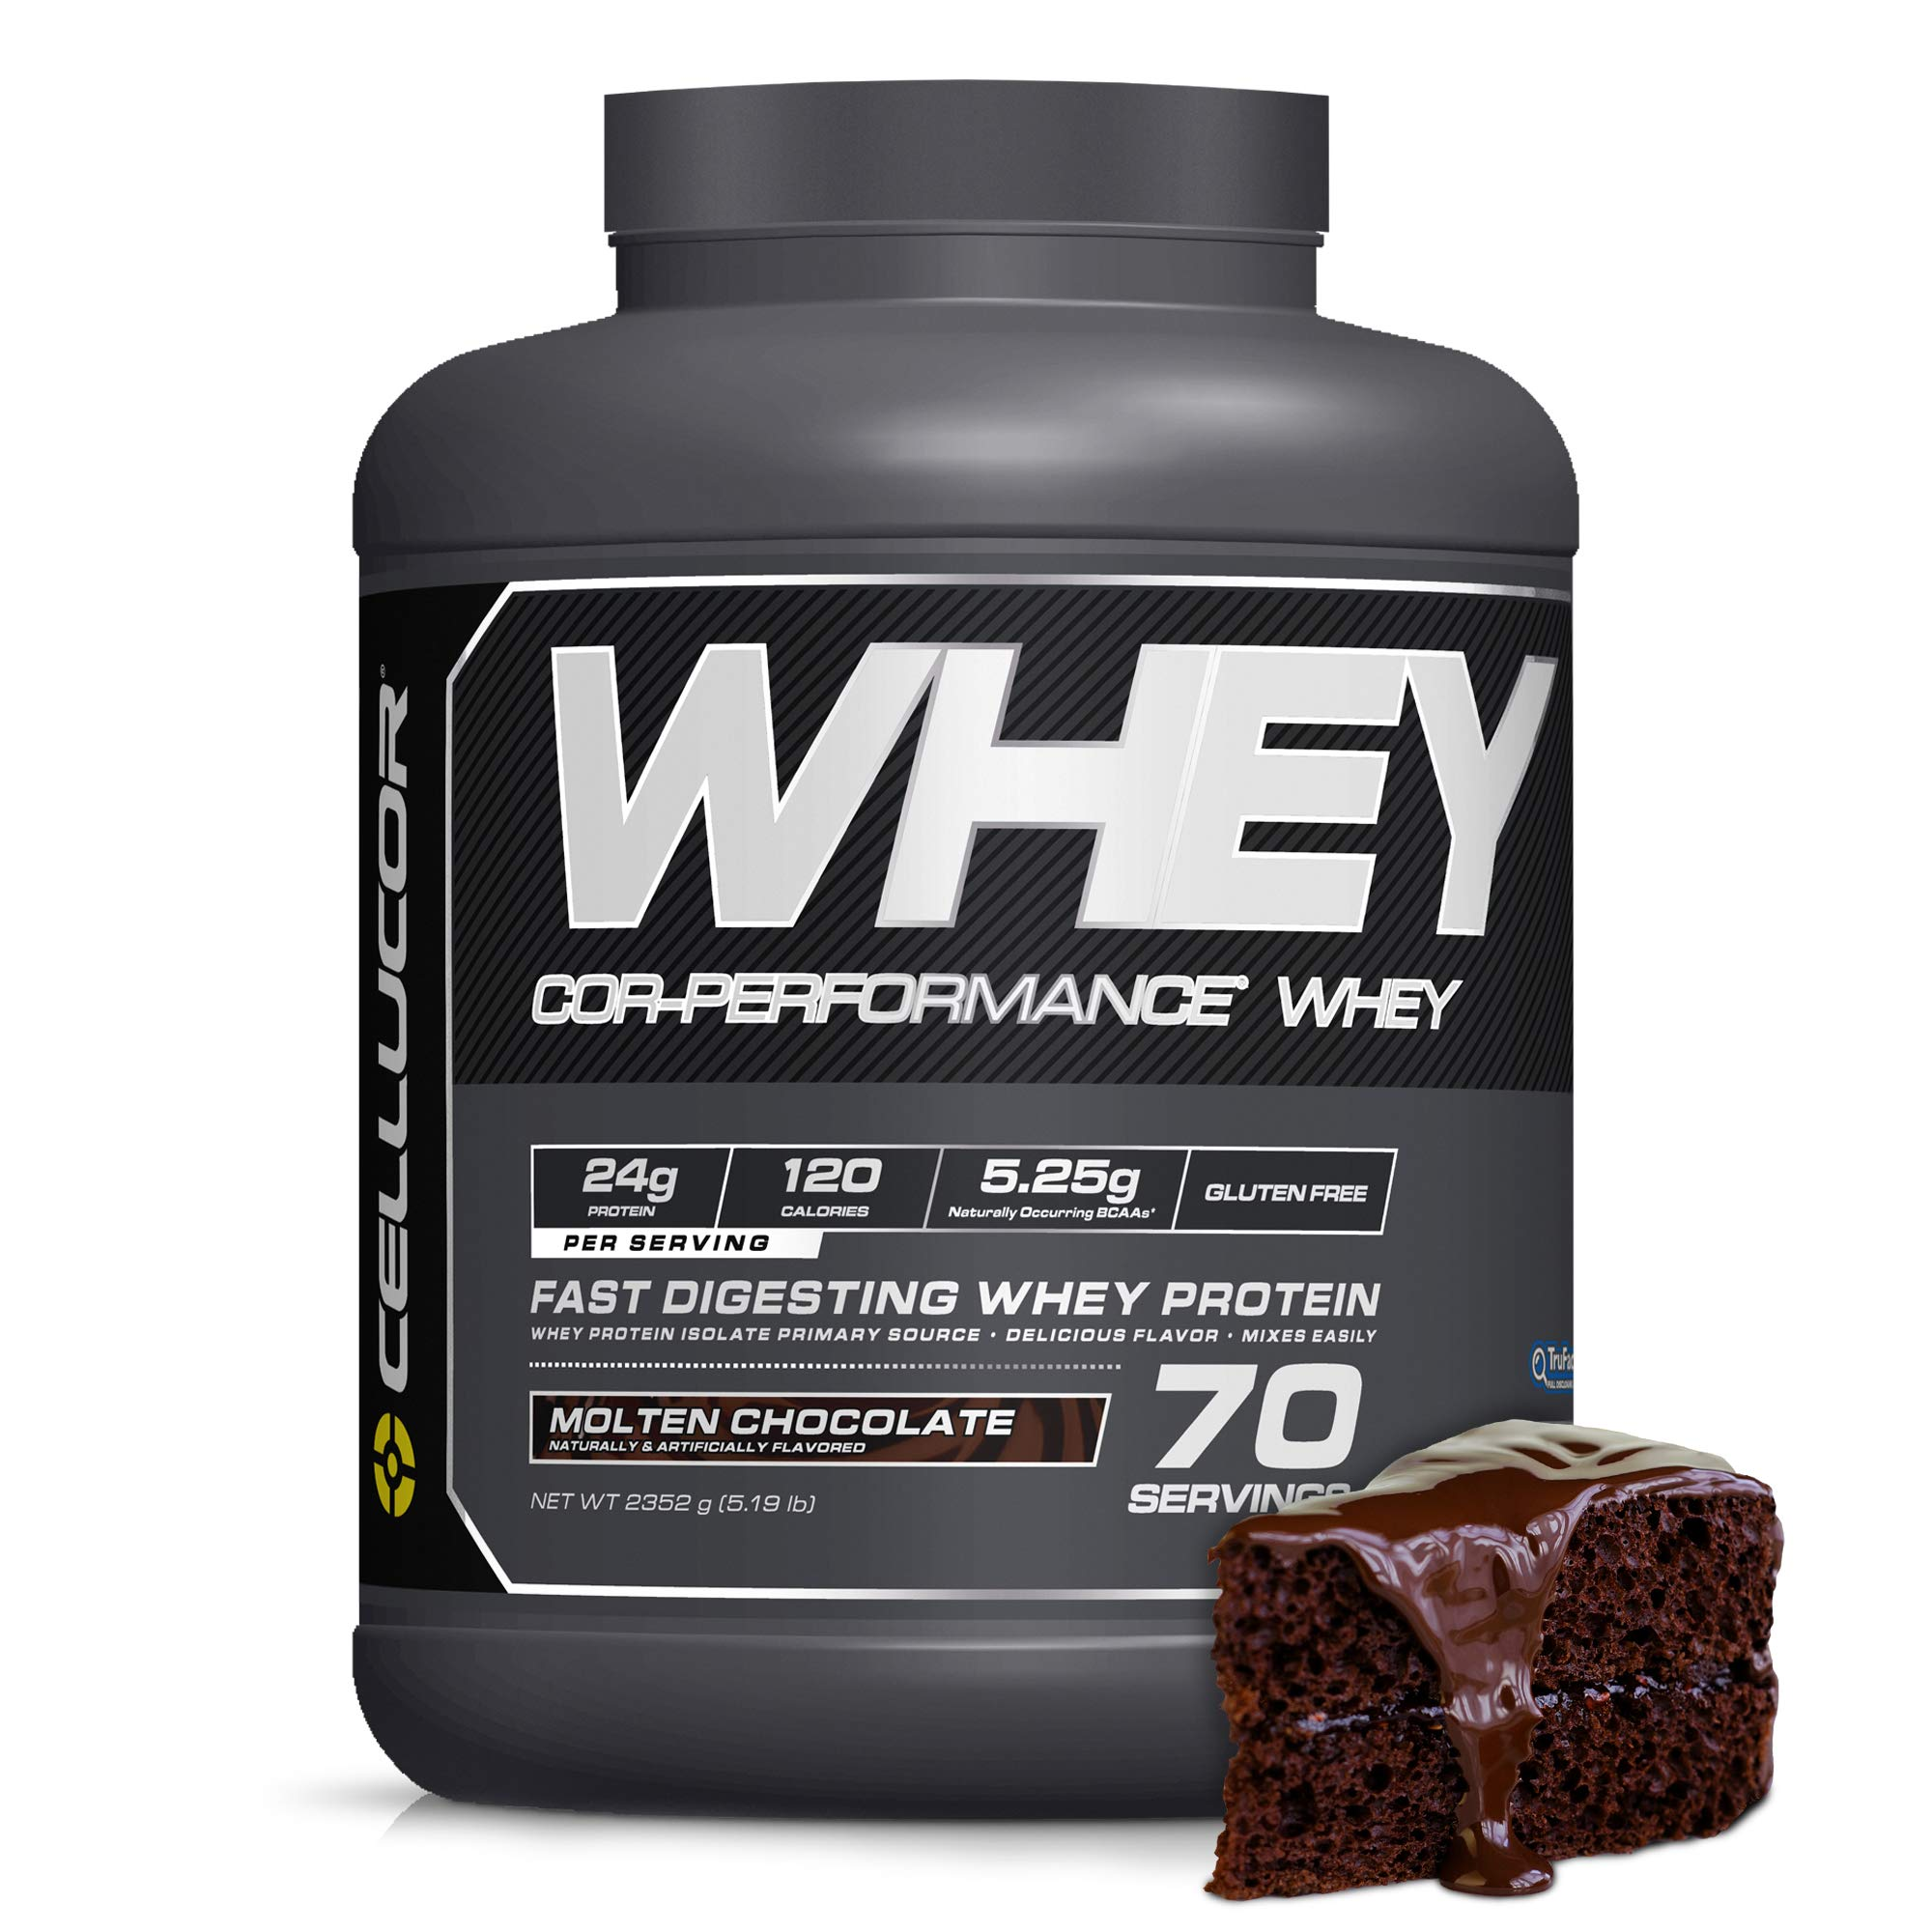 CELLUCOR COR-Performance Protein Powder Molten Chocolate | 100% Whey Isolate | Gluten Free + Low Fat Post Workout Muscle Growth Drink for Men & Women | 70 Servings by Cellucor